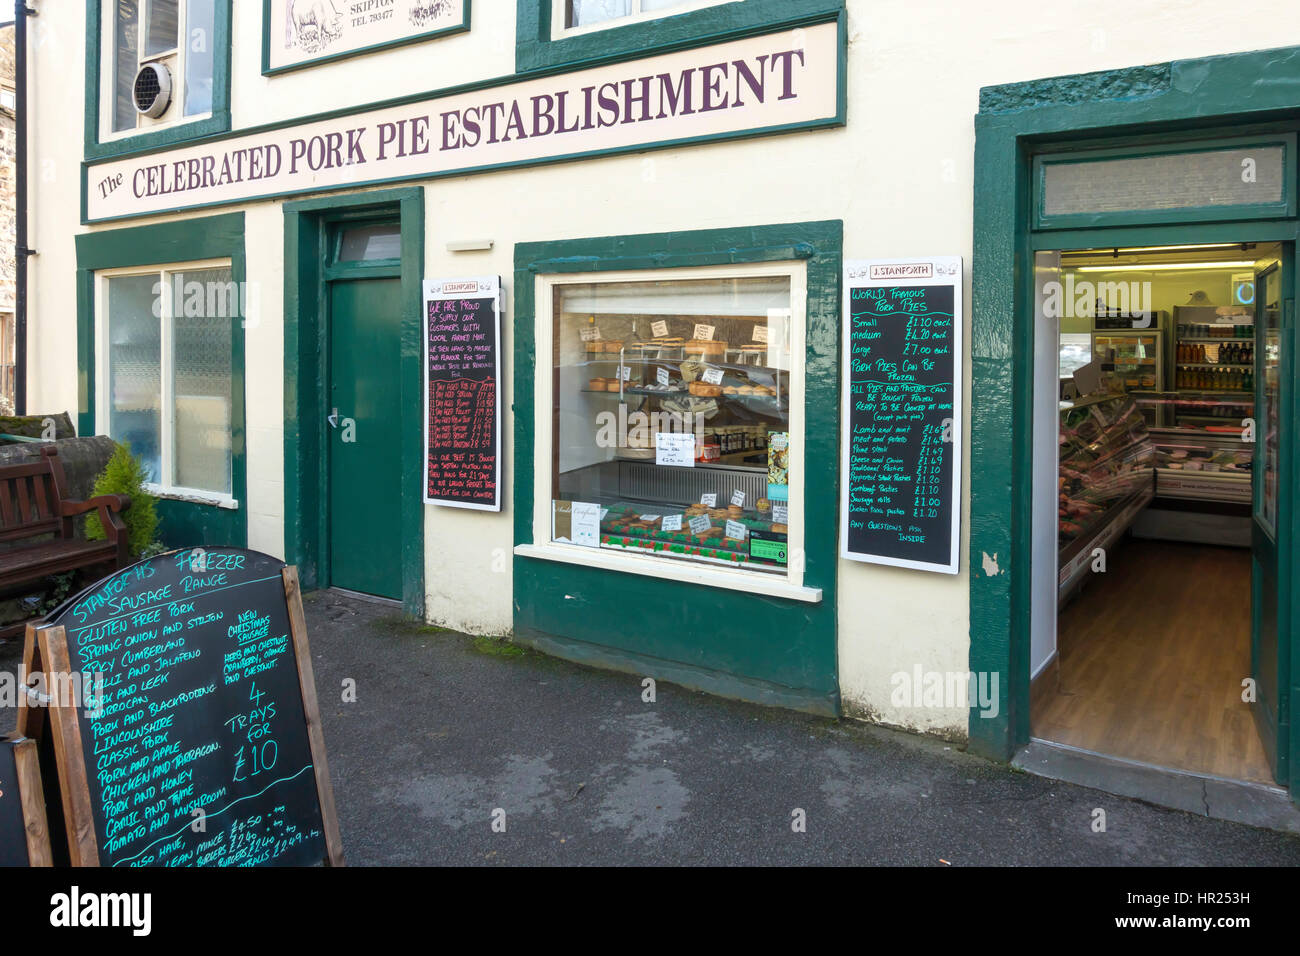 Stanforths, the Celebrated Pork Pie Establishment in Skipton North Yorkshire England, blackboards with prices 2017 - Stock Image